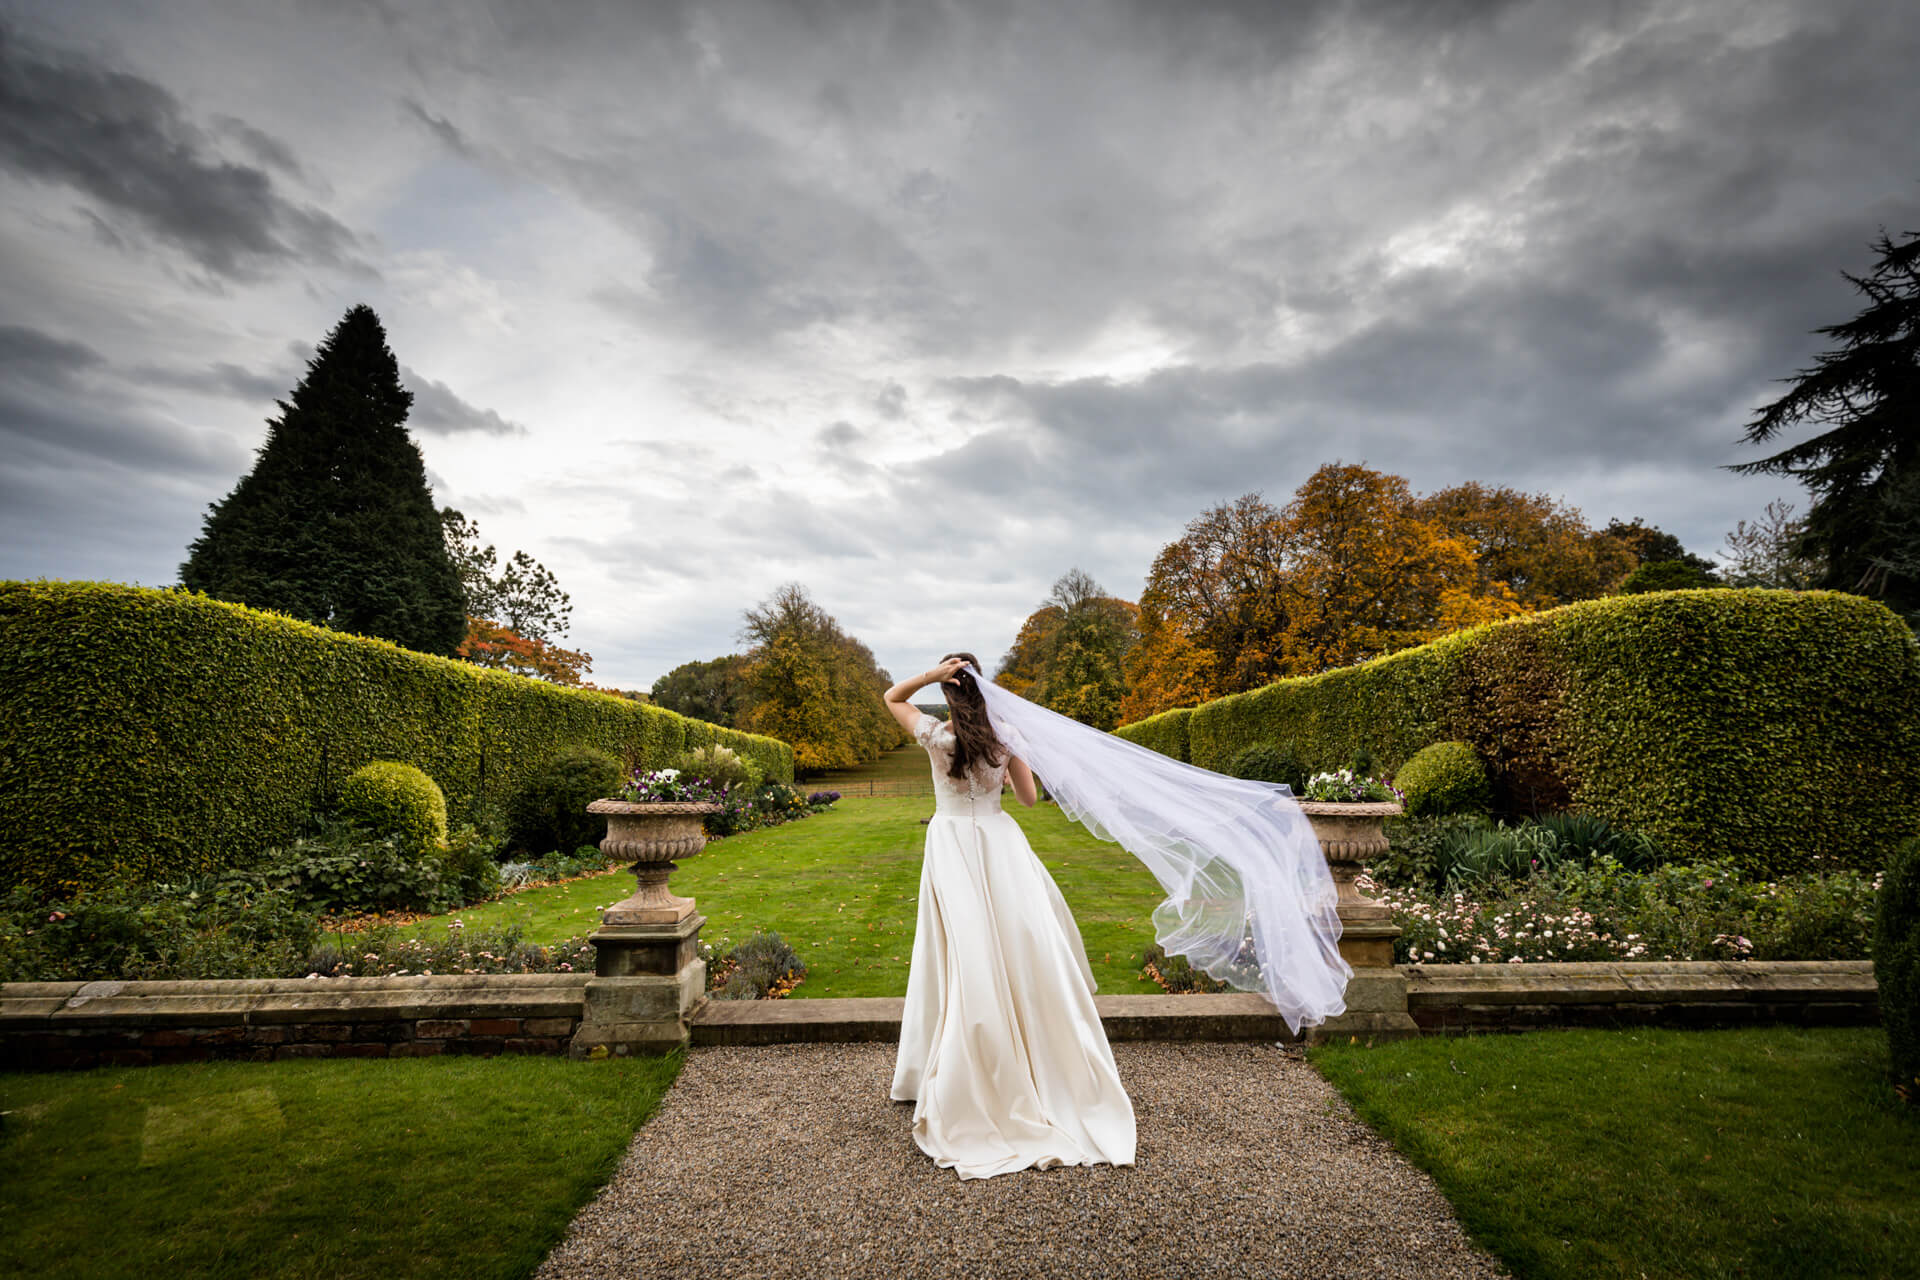 bride fixing her veil as it blows in the wind